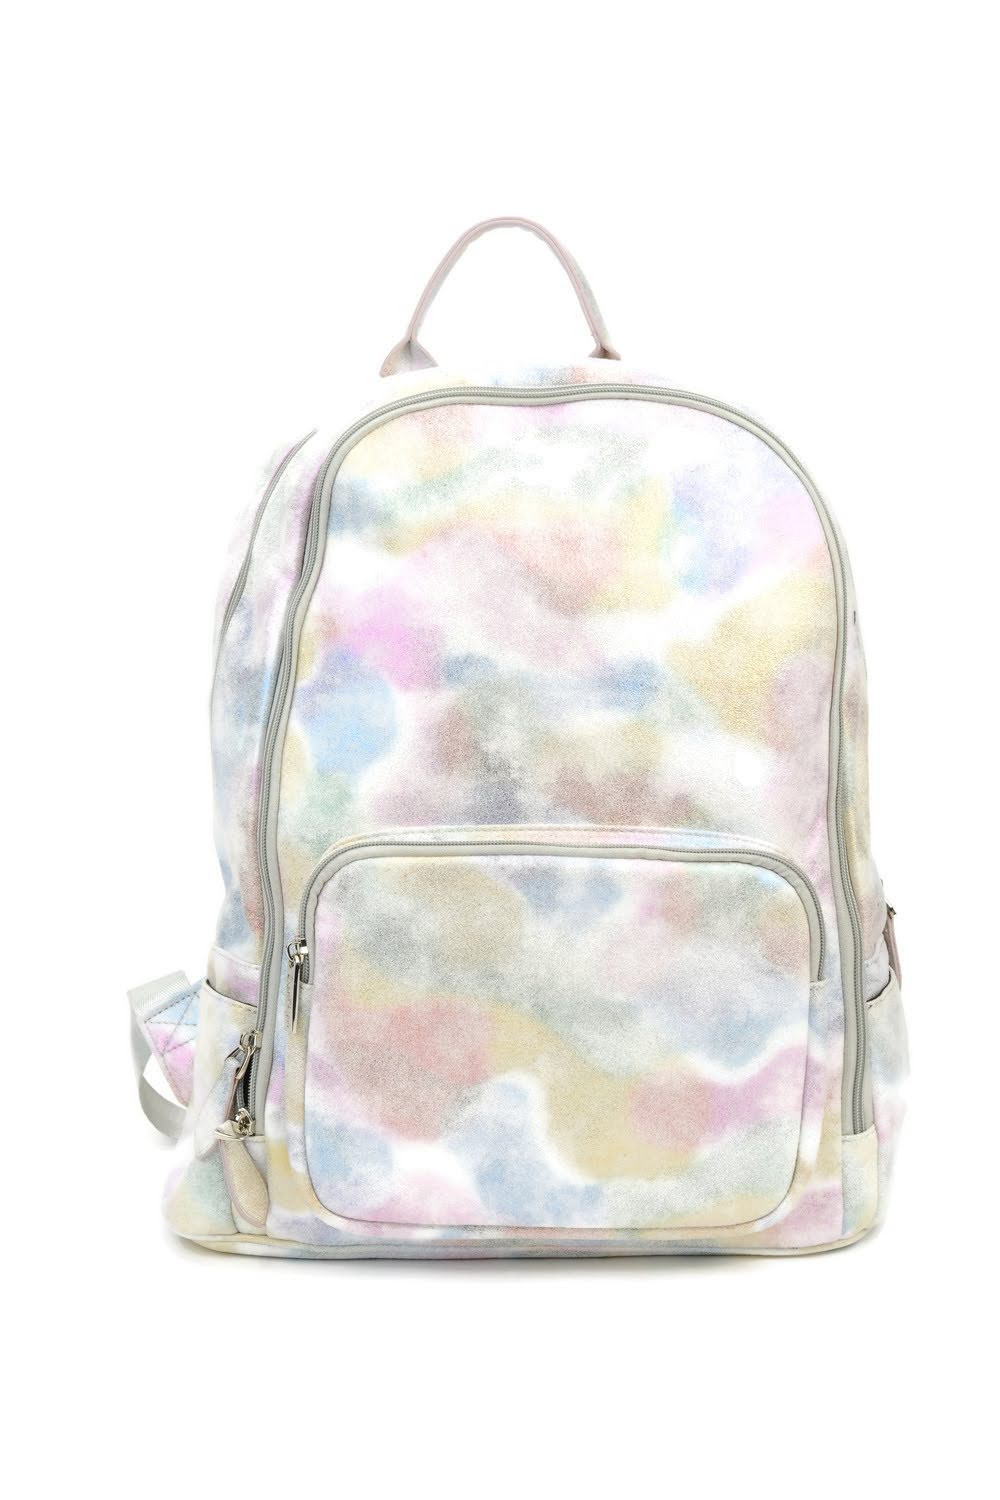 Silver Iridescent Backpack